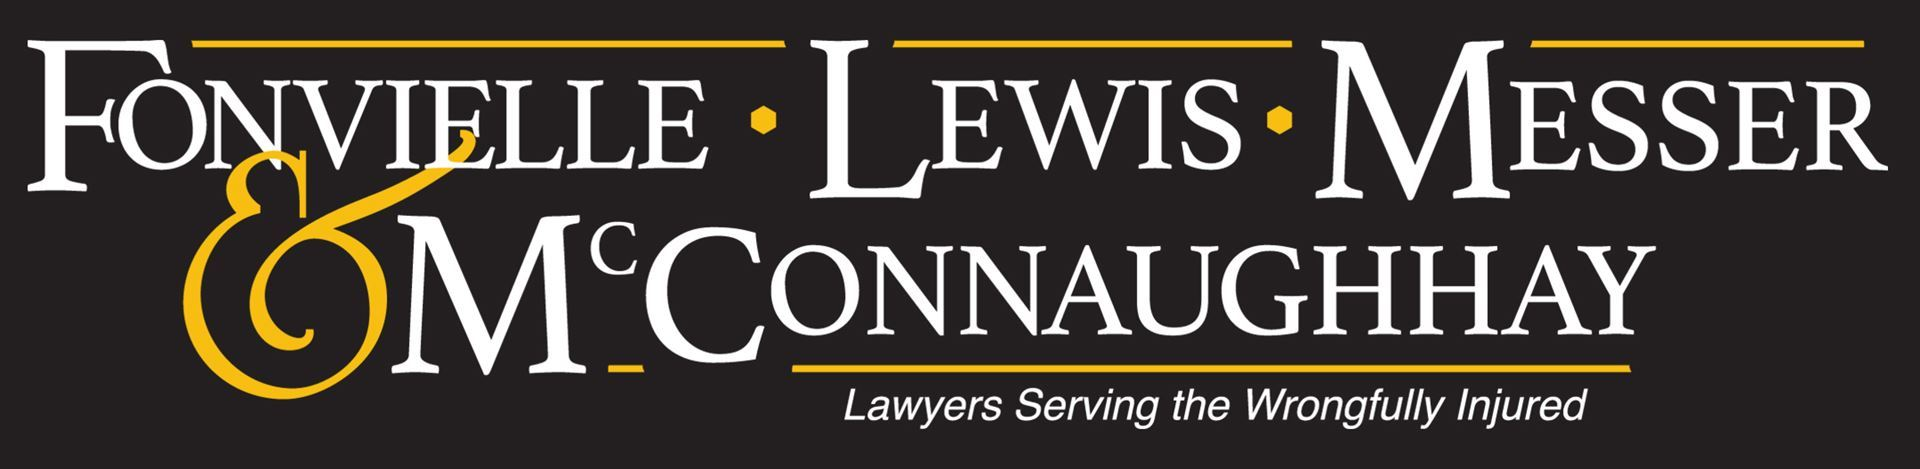 Fonvielle Lewis Messer McConnaughhay Lawyers Serving Wrongfully Injured logo